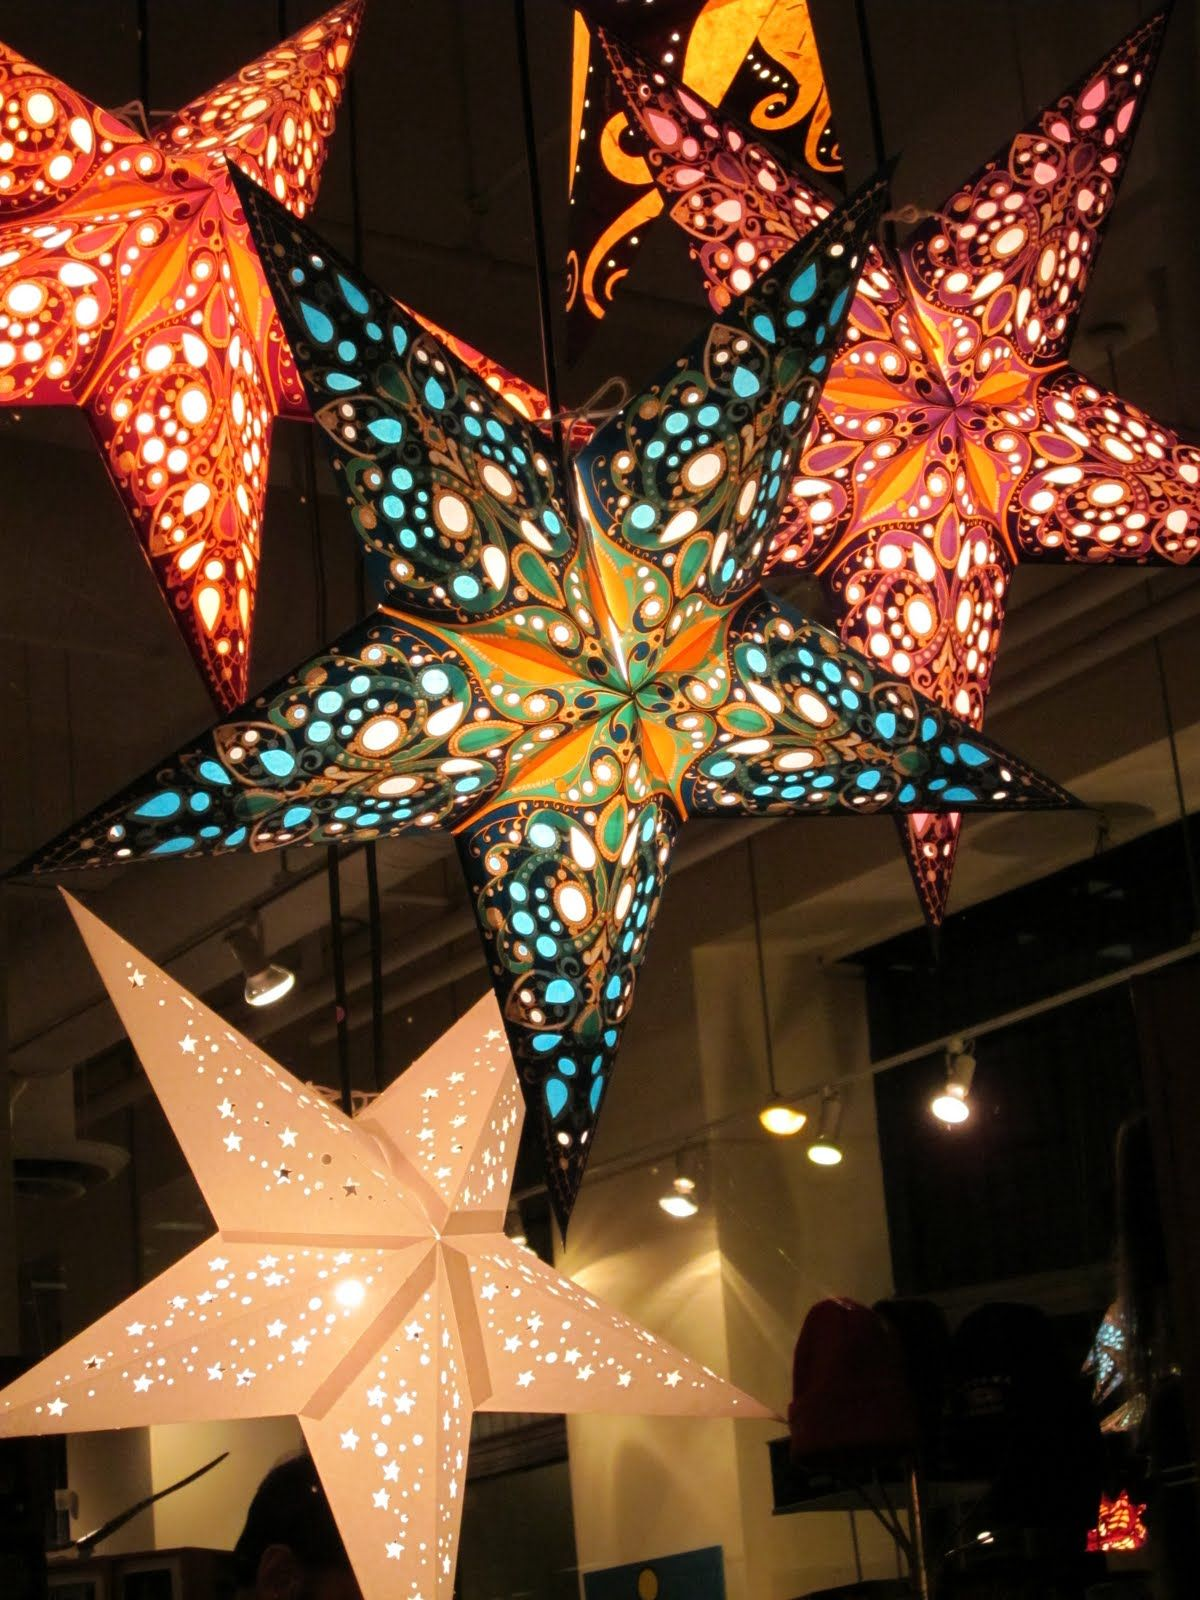 Star Lights This Makes Me Lonesome For My Starlight At Home In My